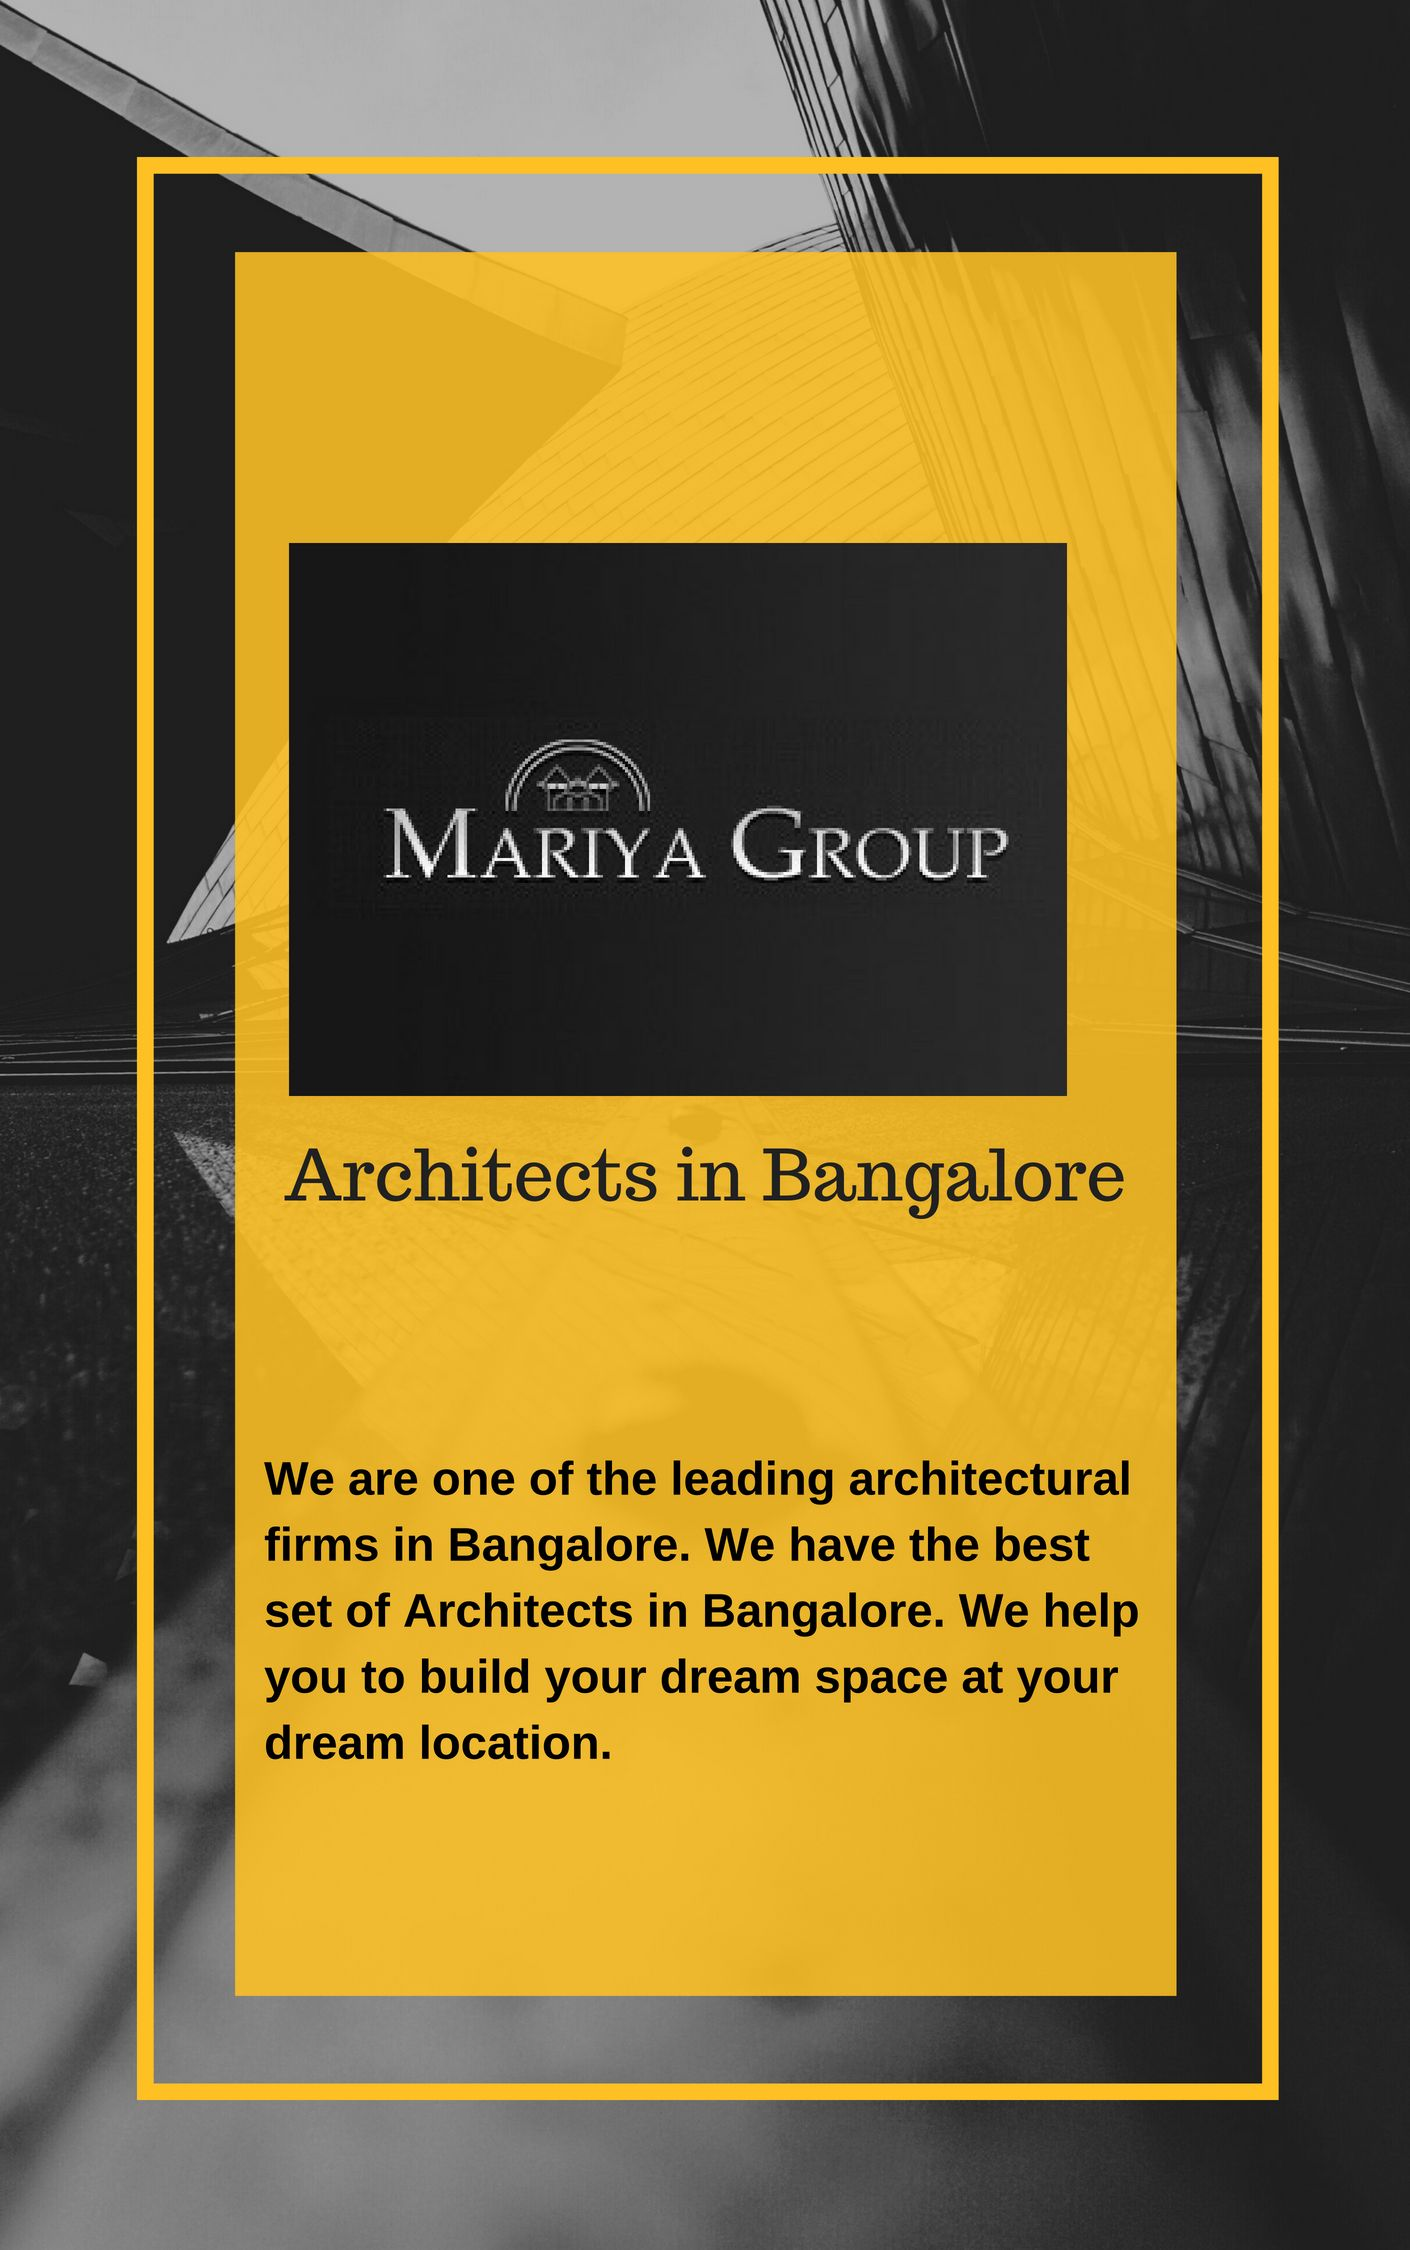 mariya group is one of the most renowned leading group of architects